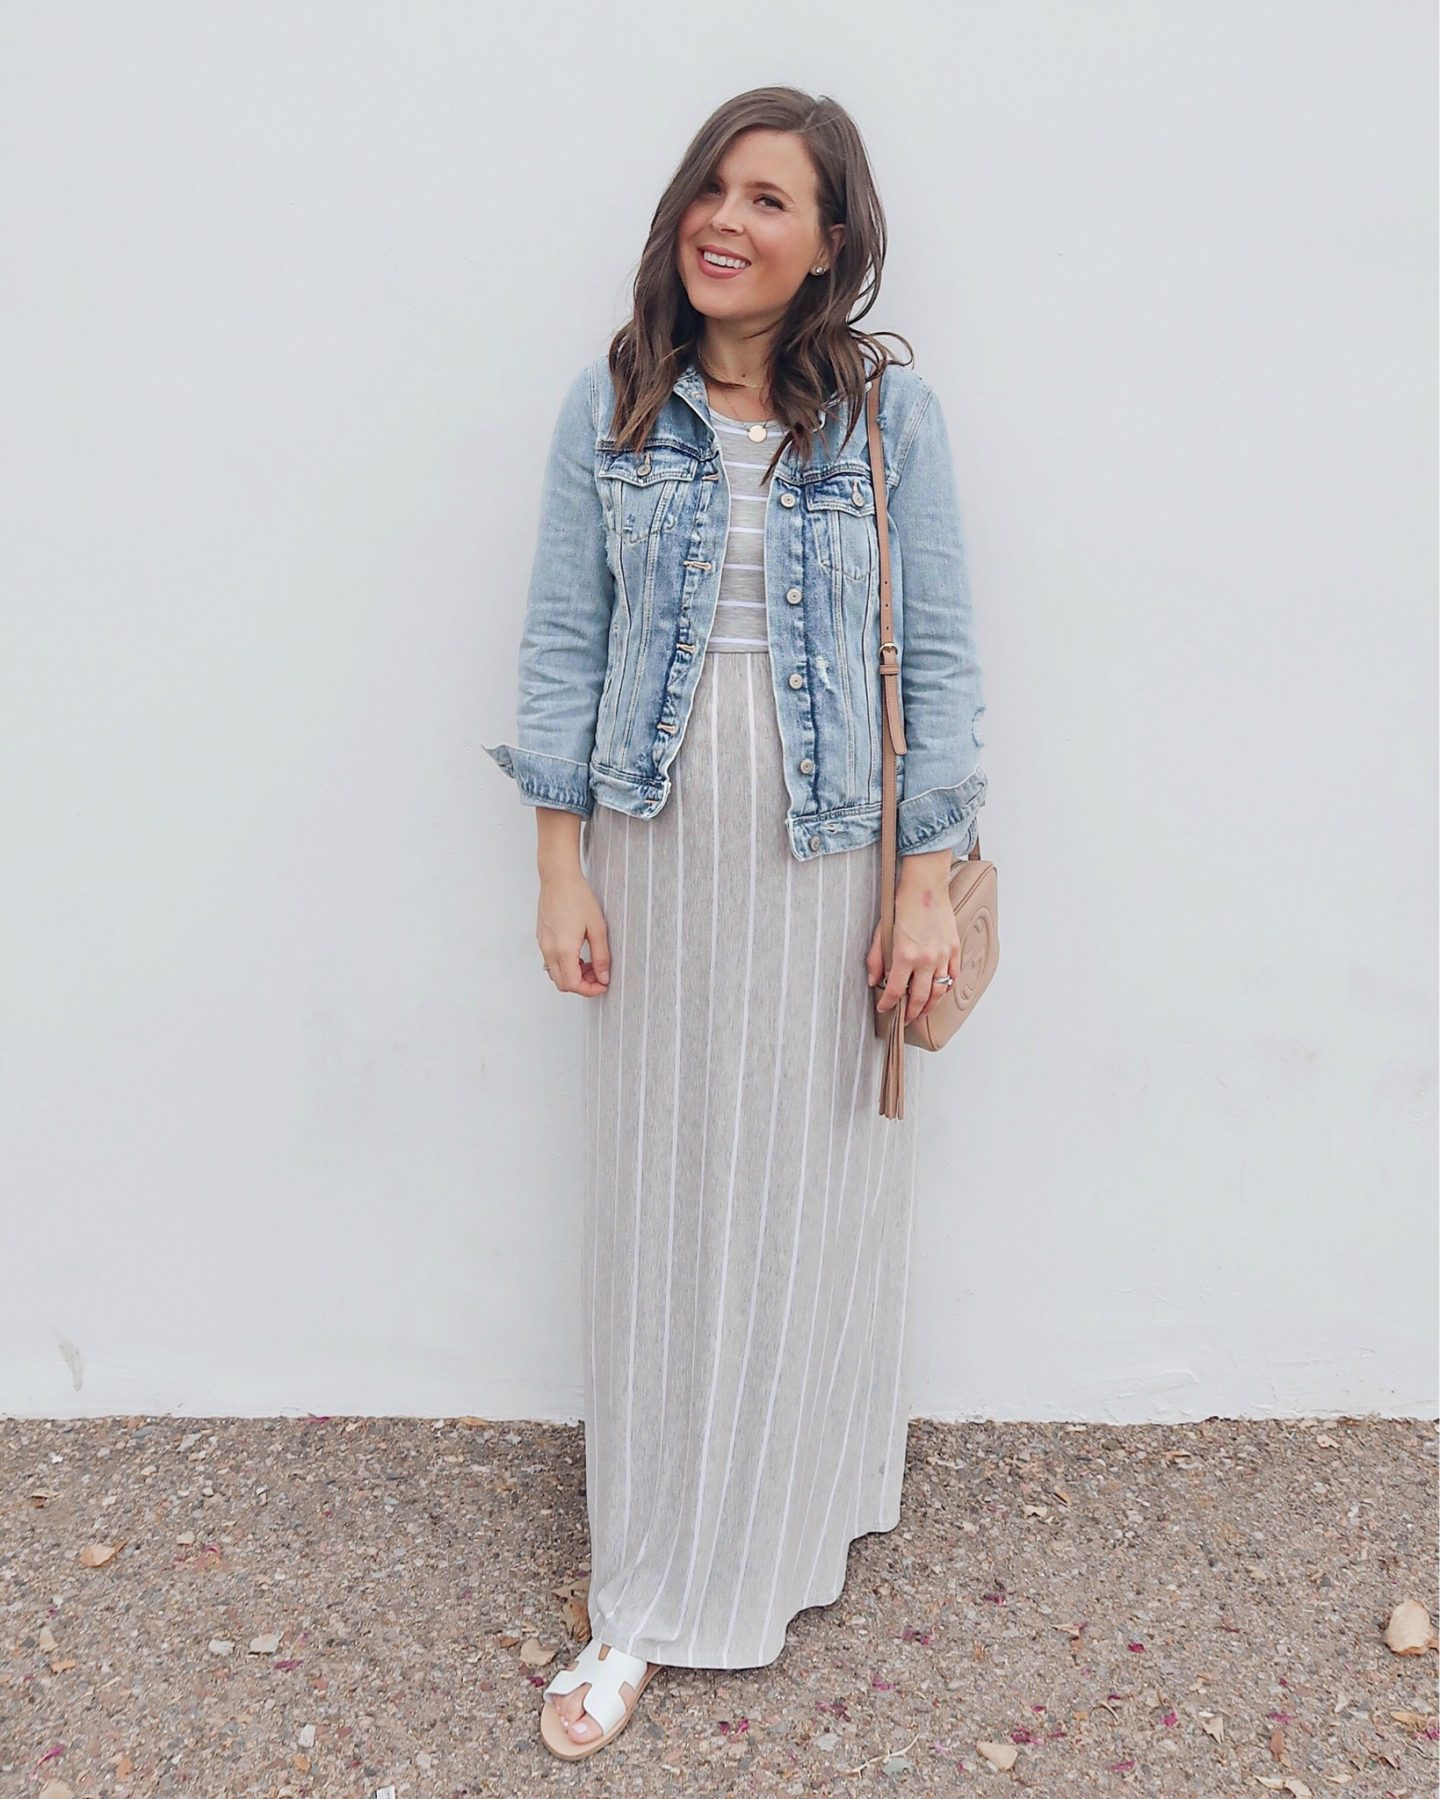 amazon try-on brie_bemis_rearick_amazon_levaca_womens_summer_sleeveless_striped_maxi_dress_2